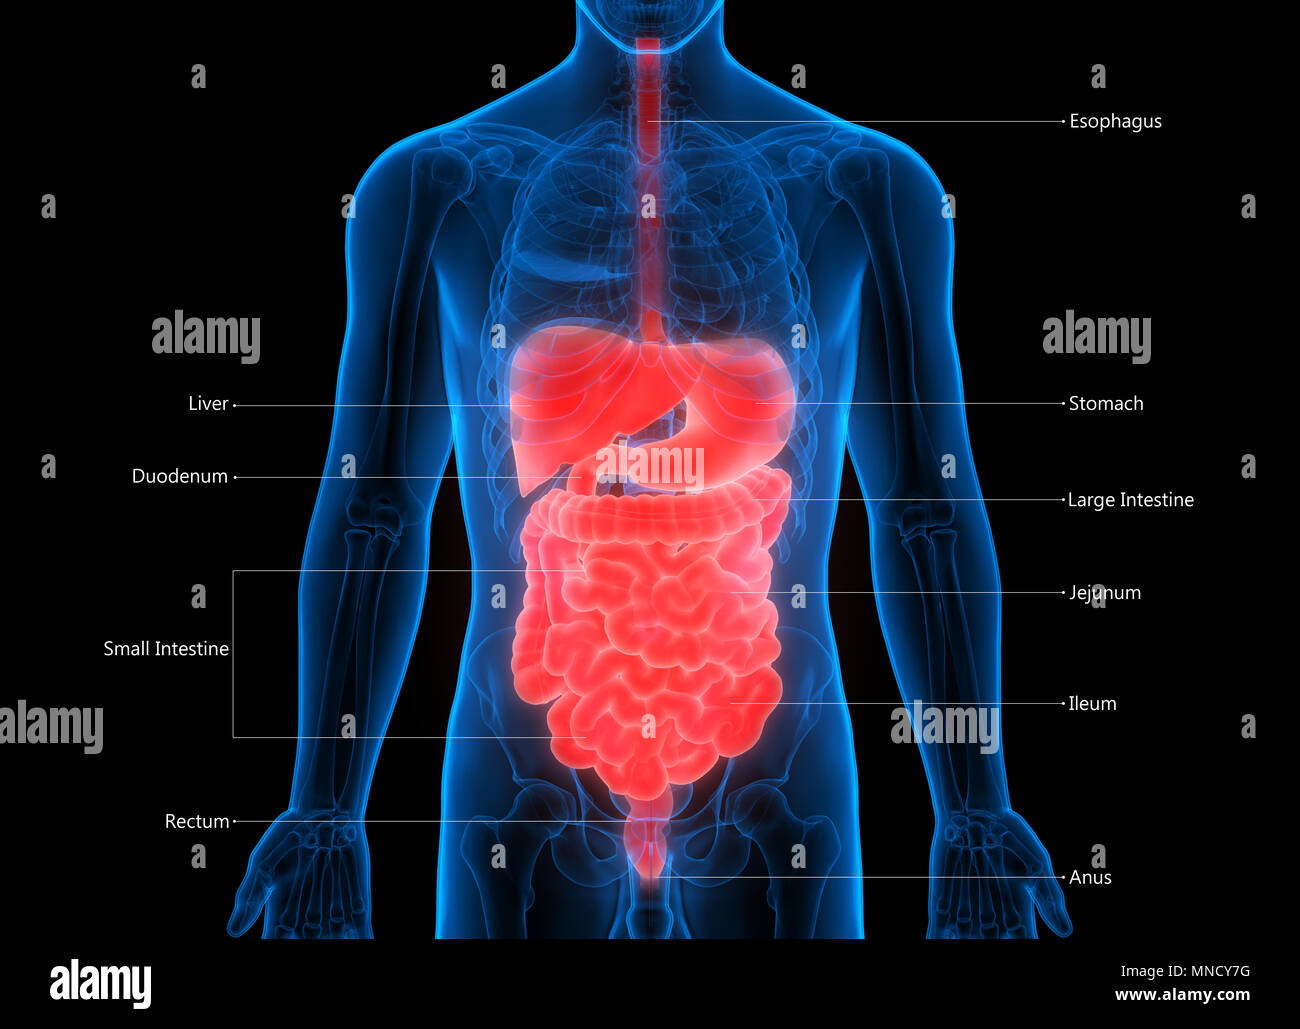 Human Digestive System Anatomy Stock Photo 185296260 Alamy